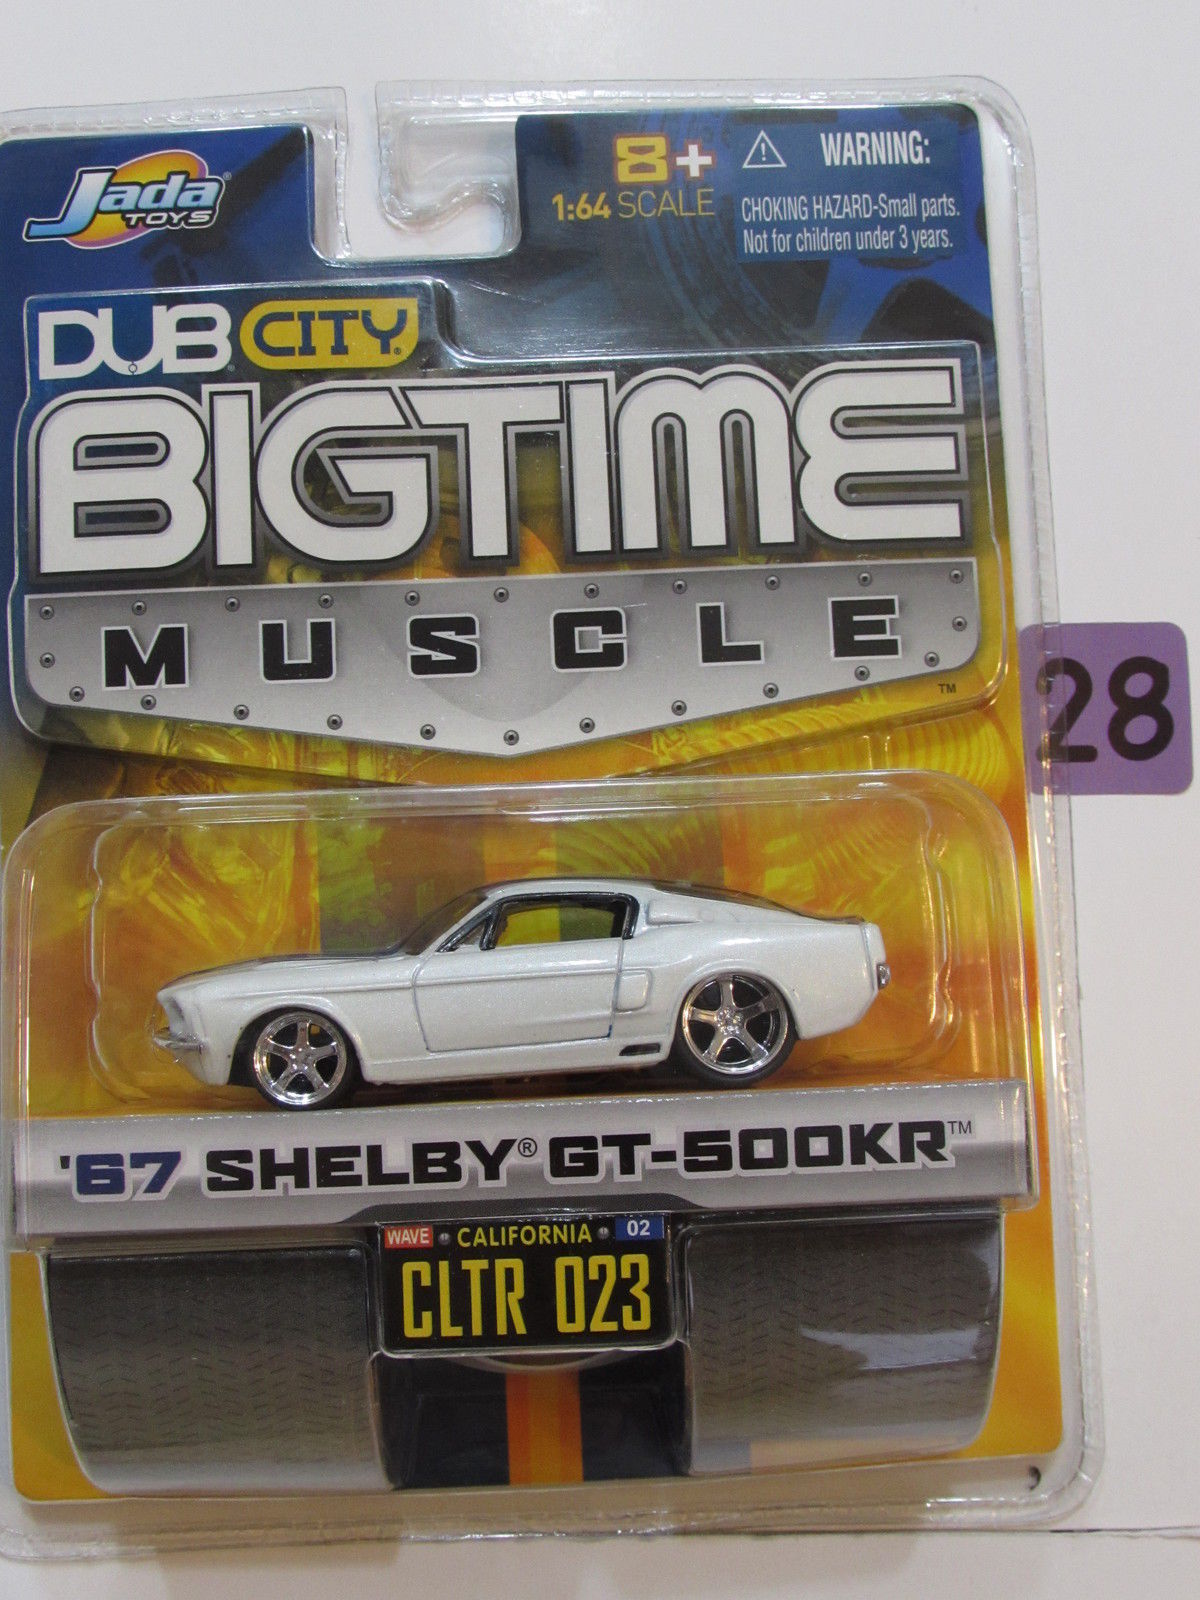 JADA DUB CITY BIGTIME MUSCLE '67 SHELBY GT-500KR CLTR 023 NO STRIPE ERROR